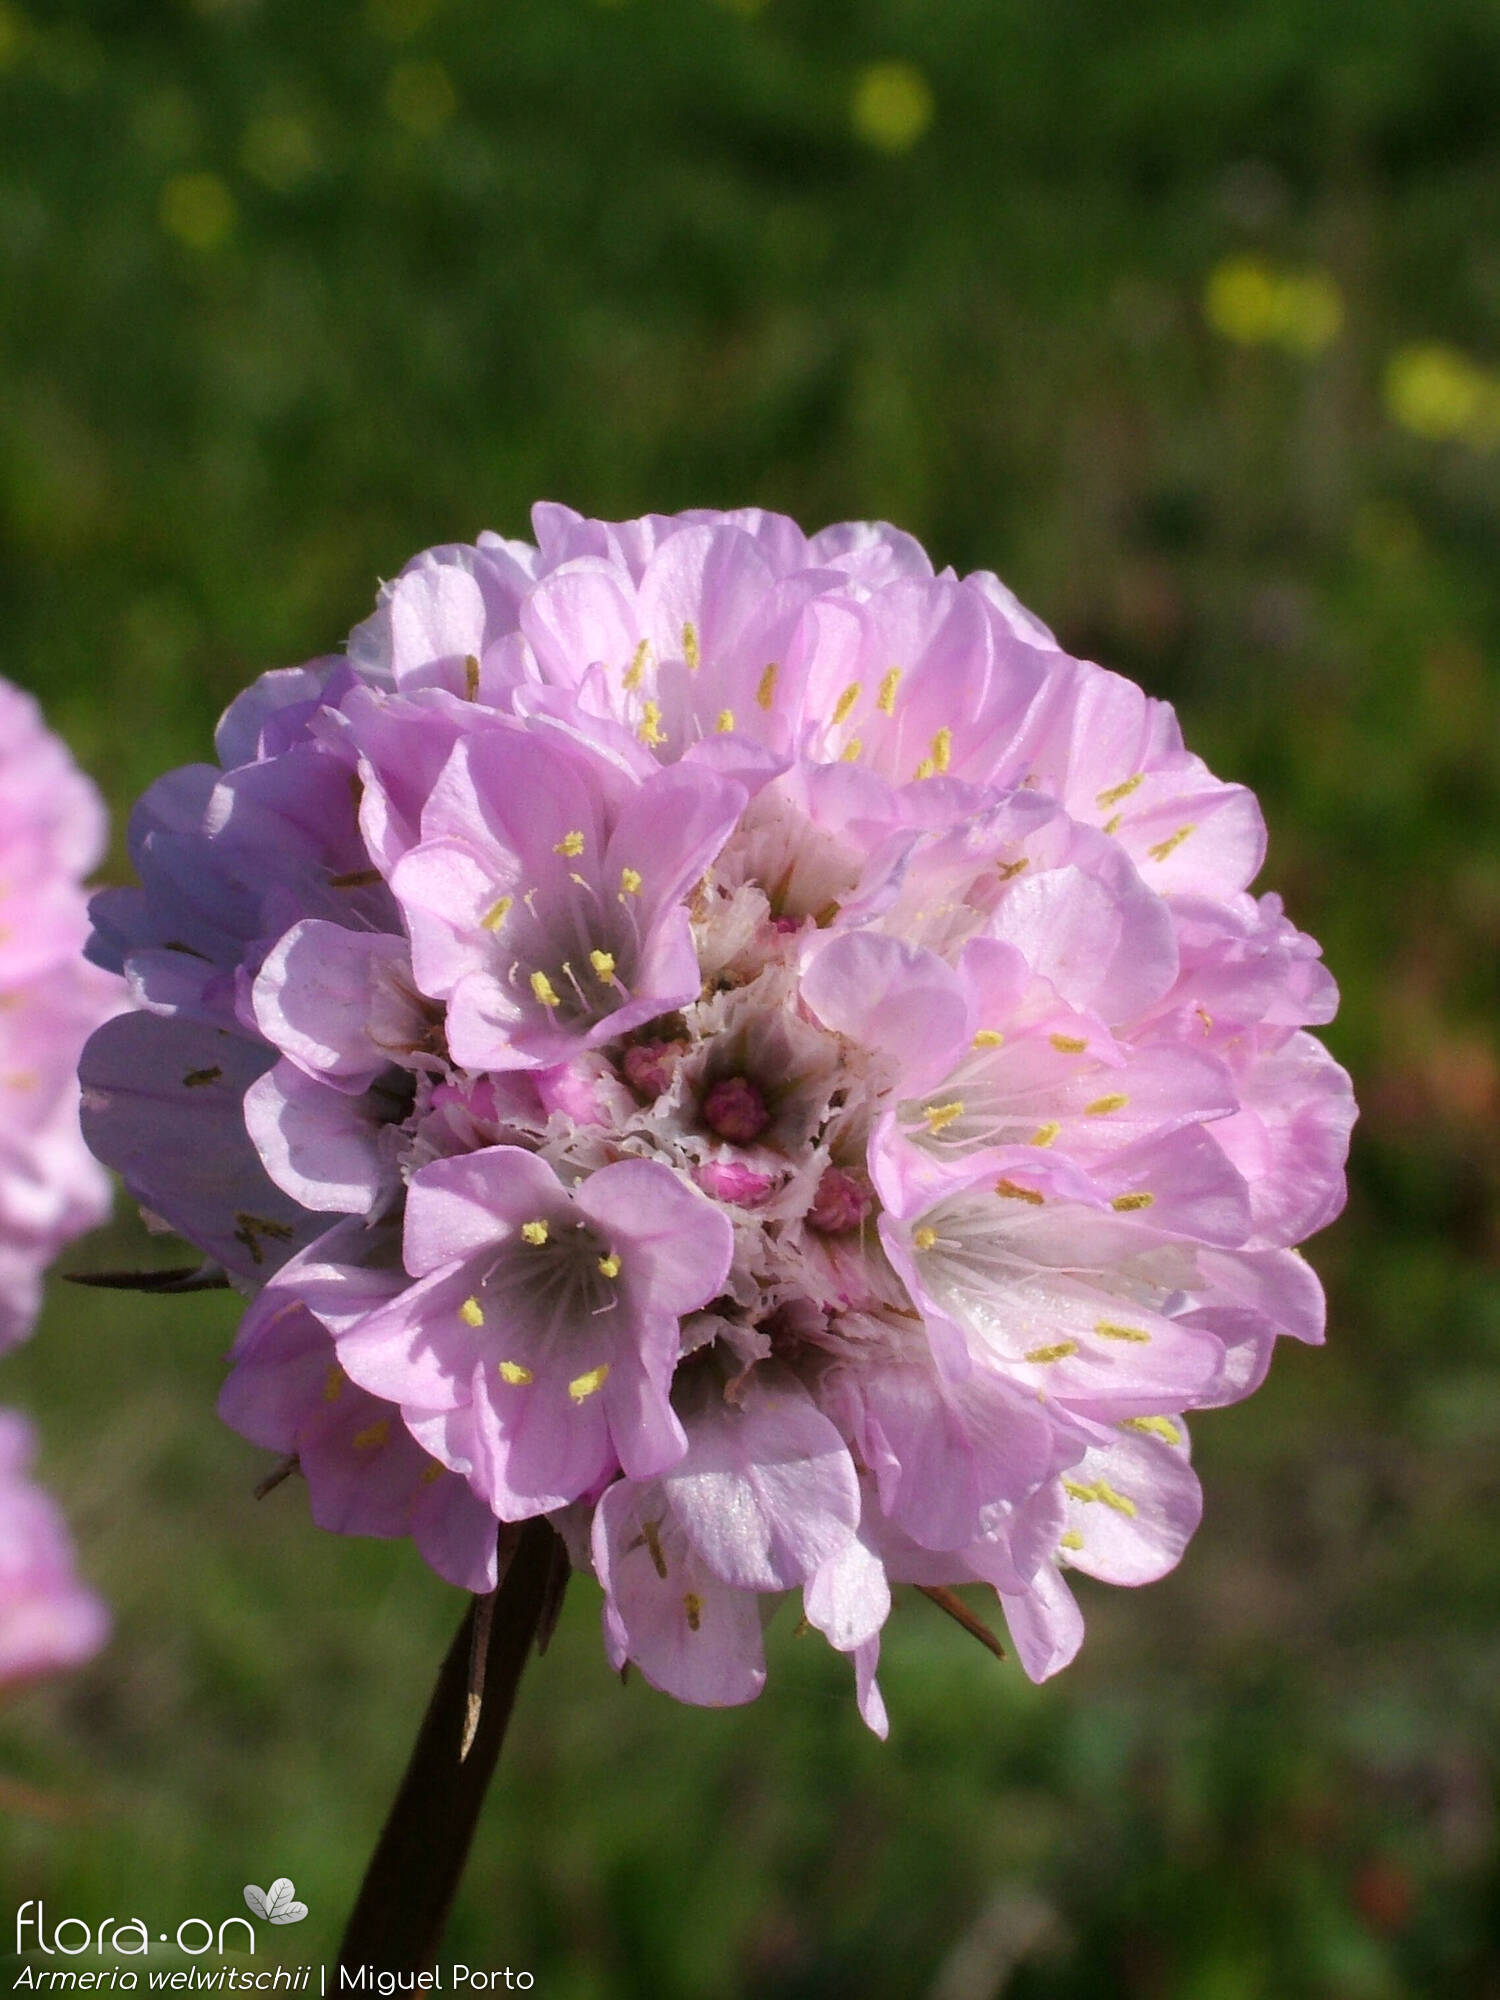 Armeria welwitschii - Flor (close-up) | Miguel Porto; CC BY-NC 4.0